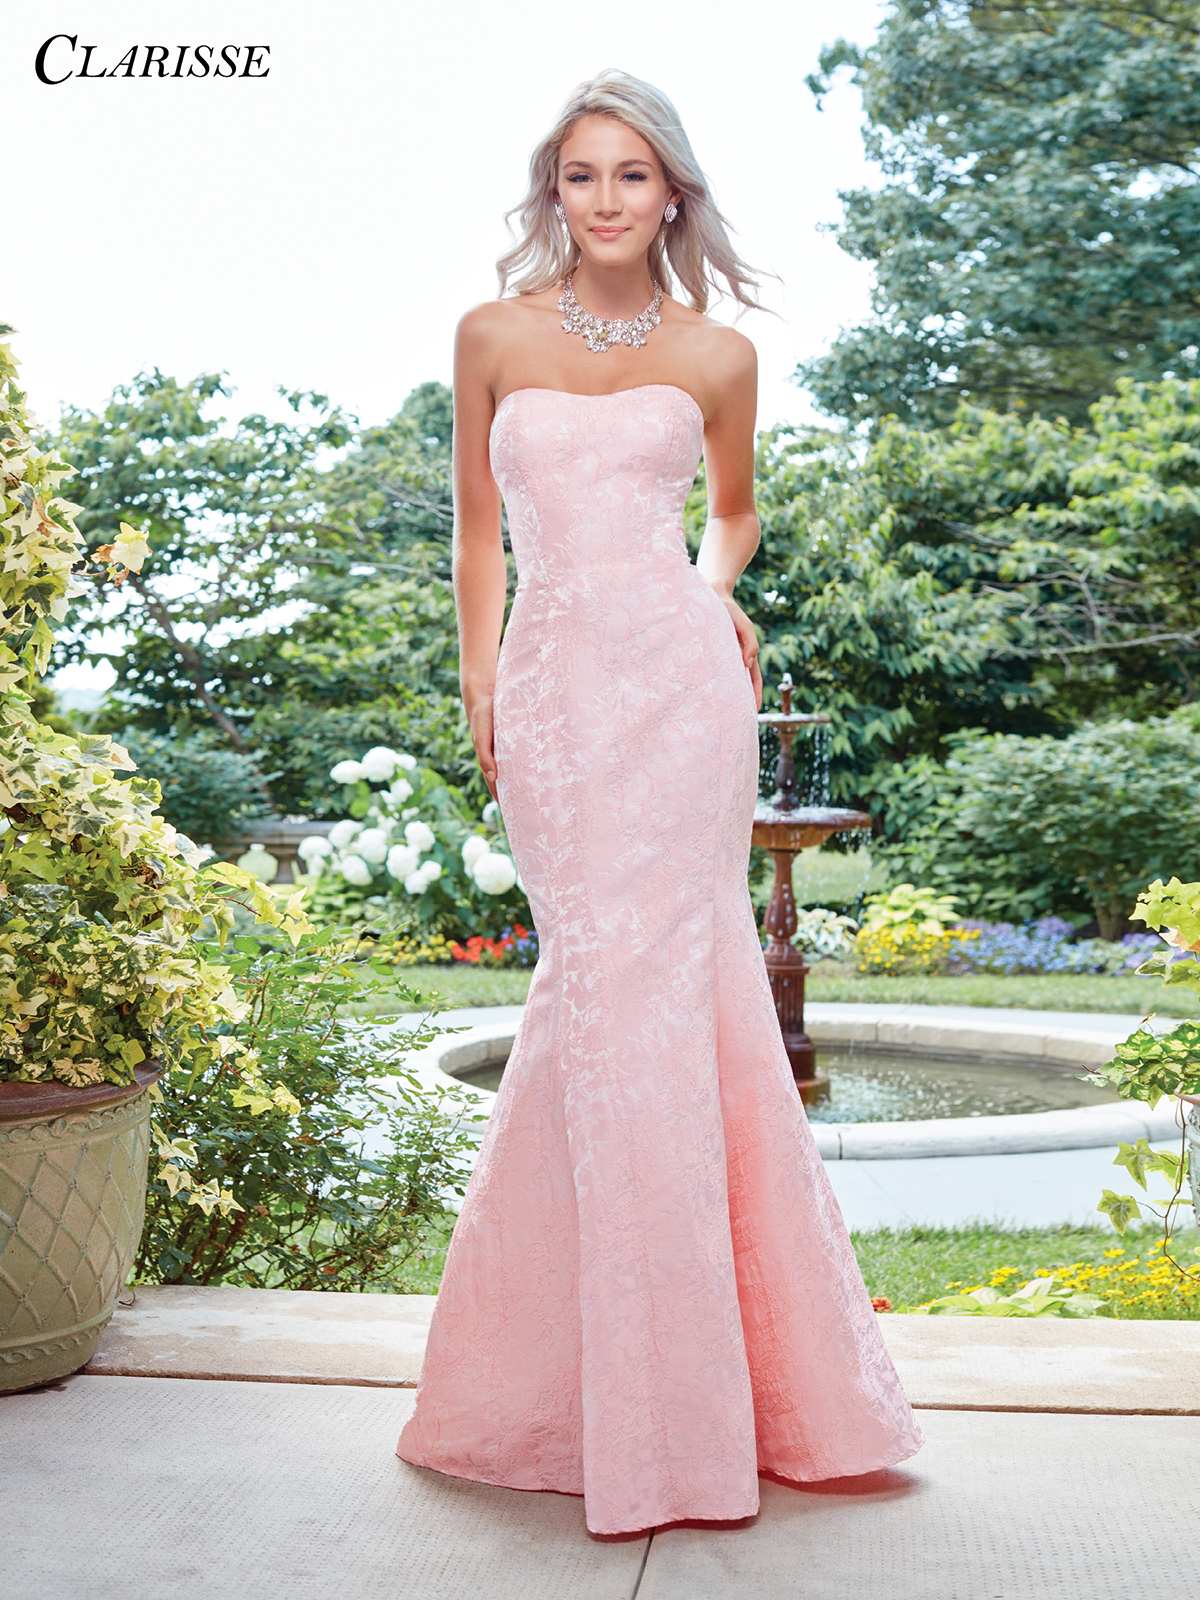 2018 Prom Dress Clarisse 3415 | Promgirl.net